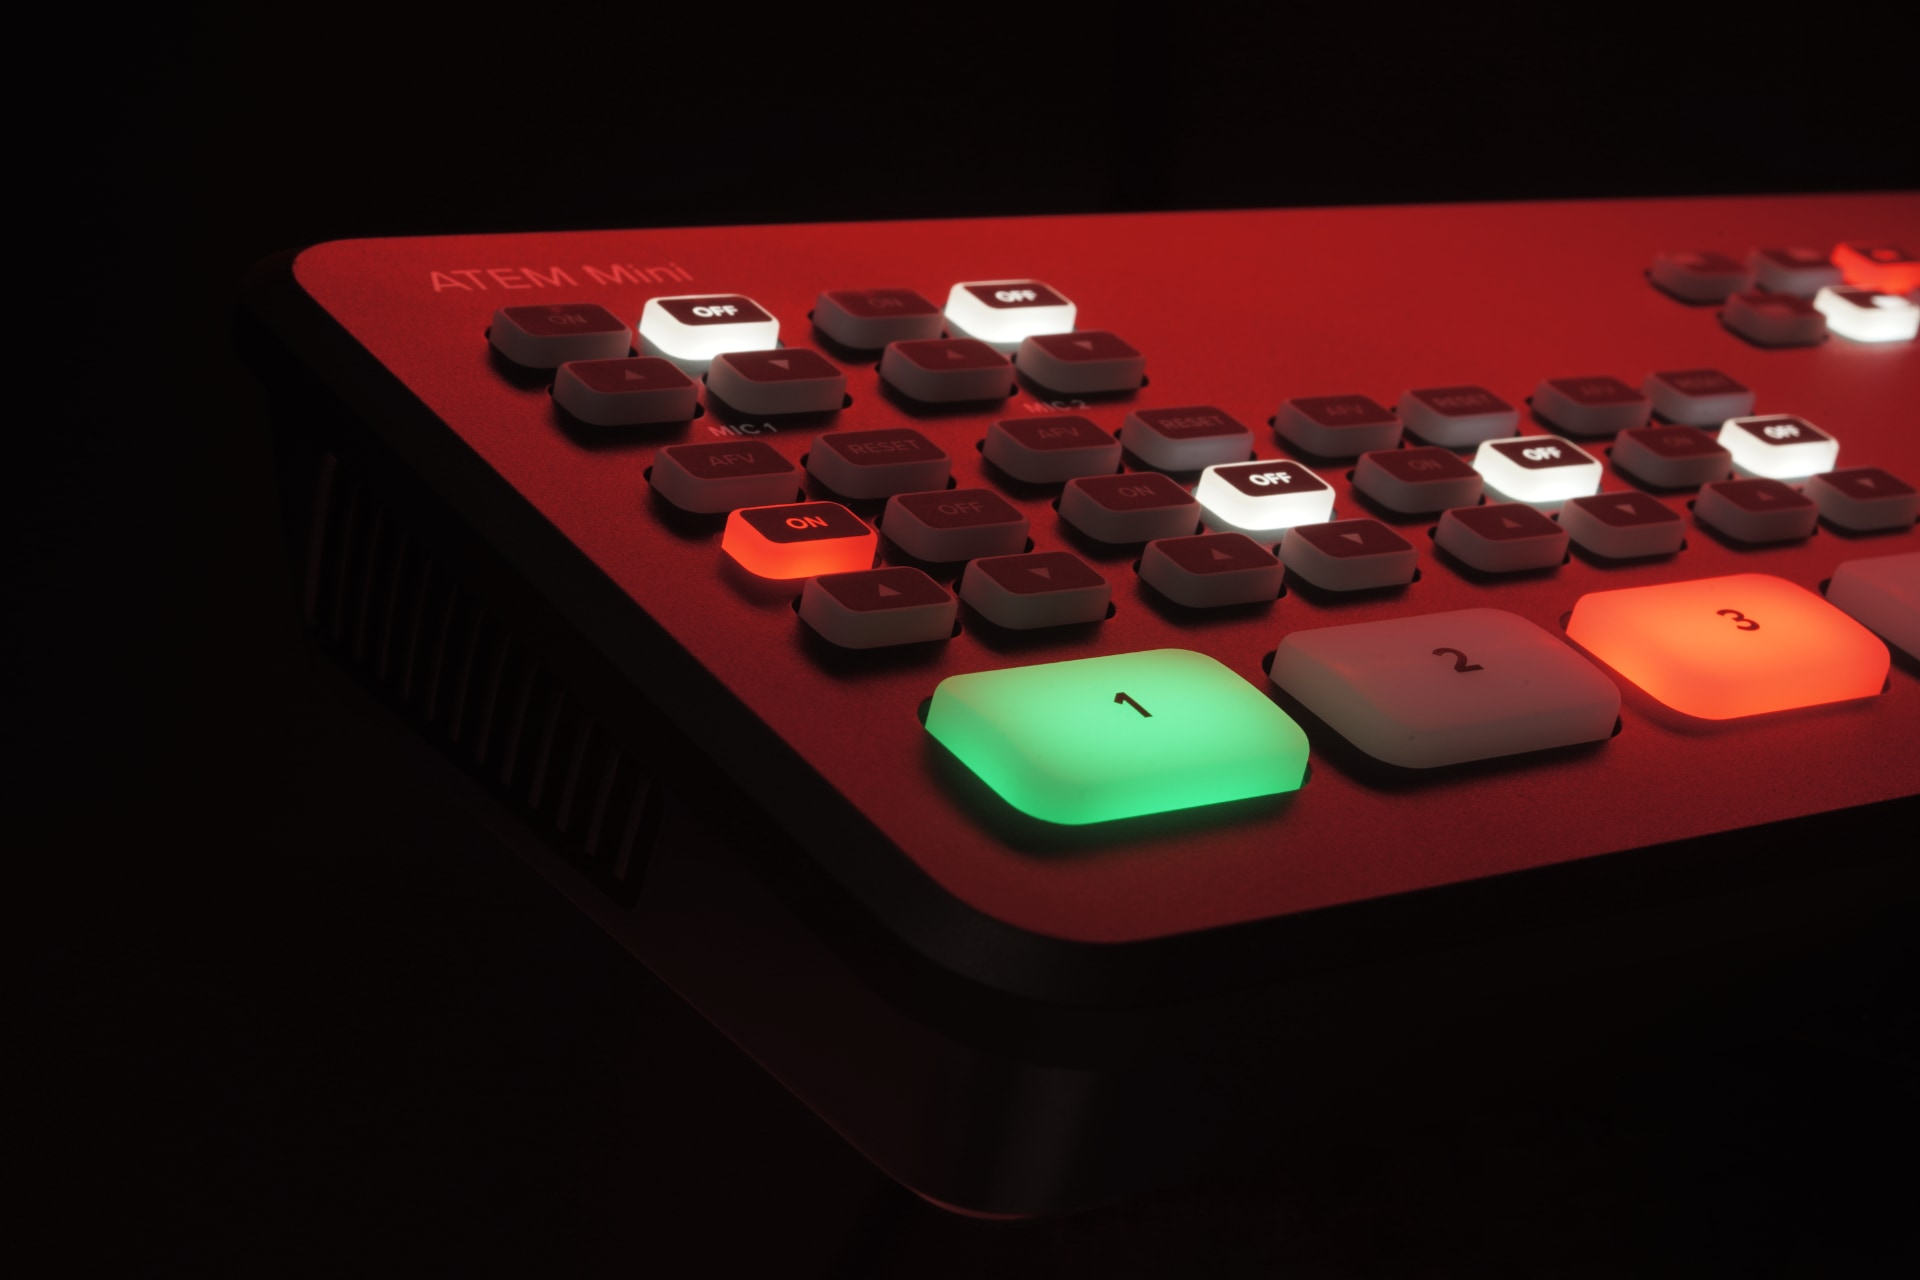 Atem Mini video switcher with coloured buttons